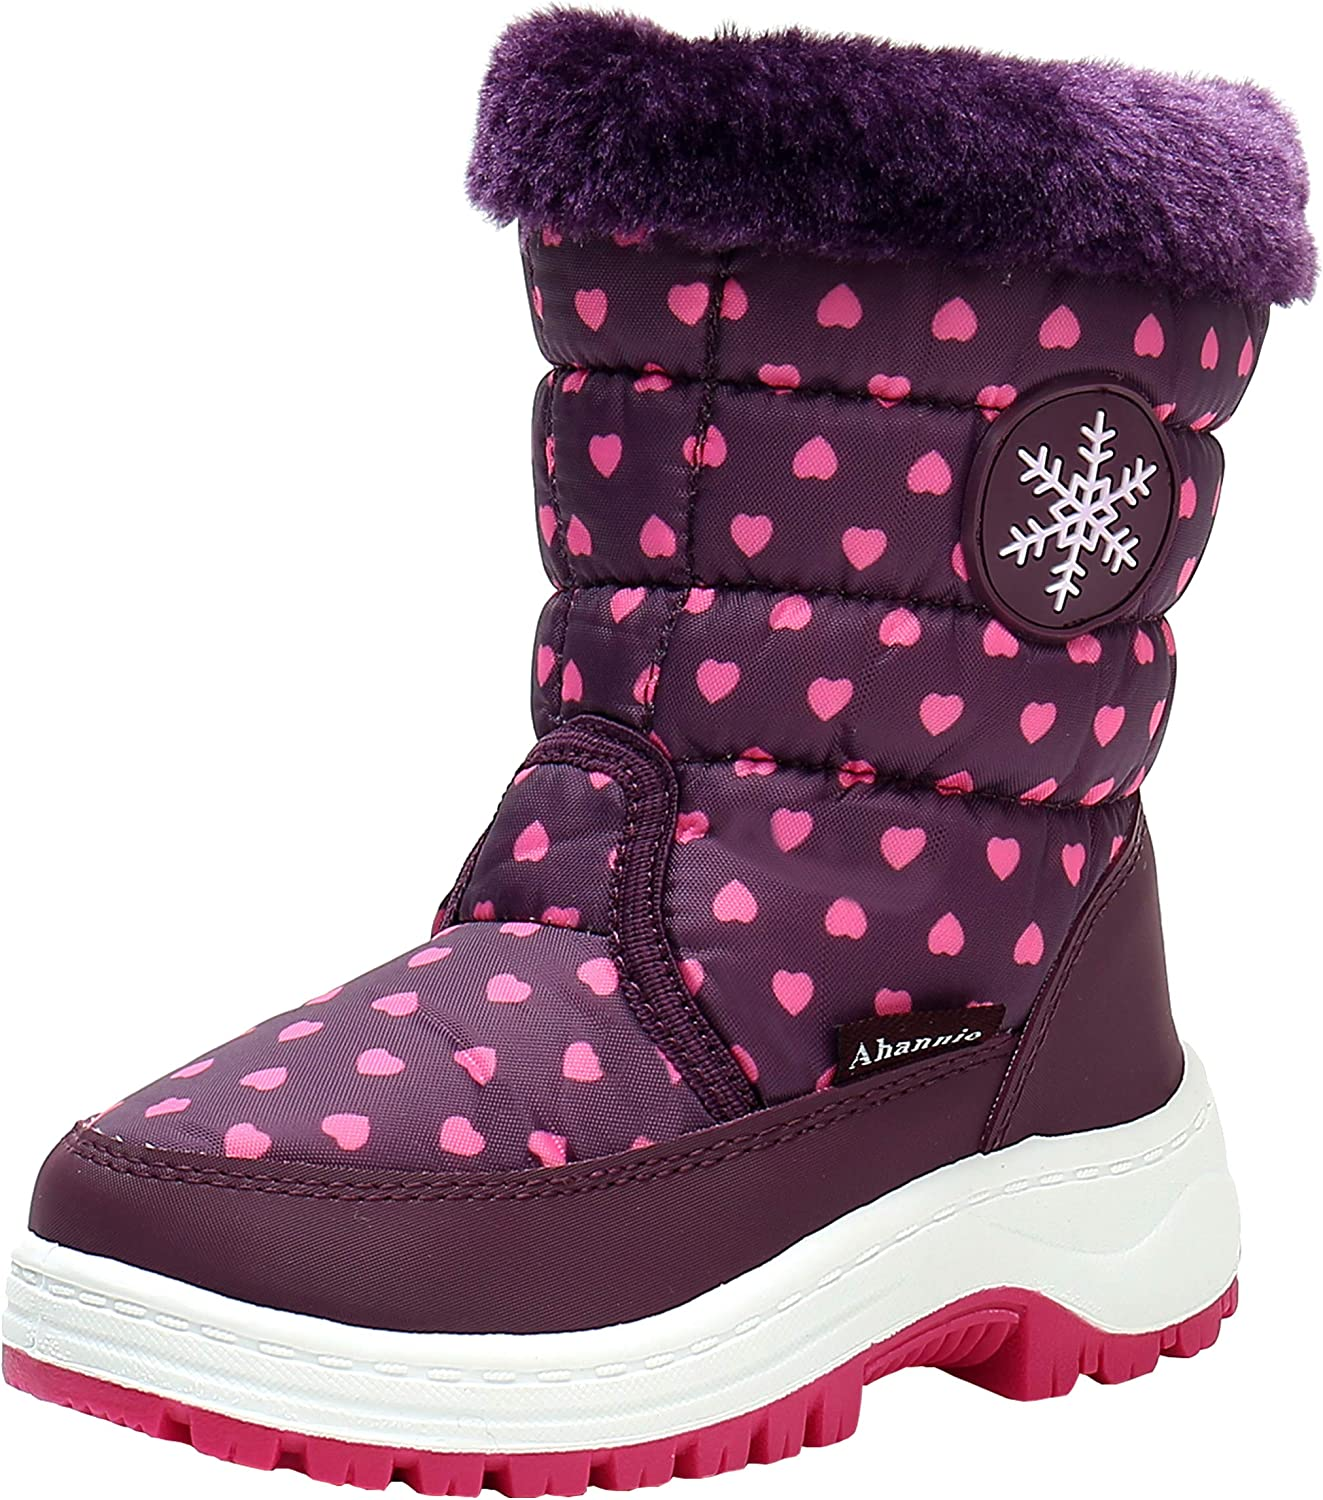 Special Campaign Ahannie Toddler Free shipping anywhere in the nation Girls Warm Snow Insulated Boots Kid Outdoor Win